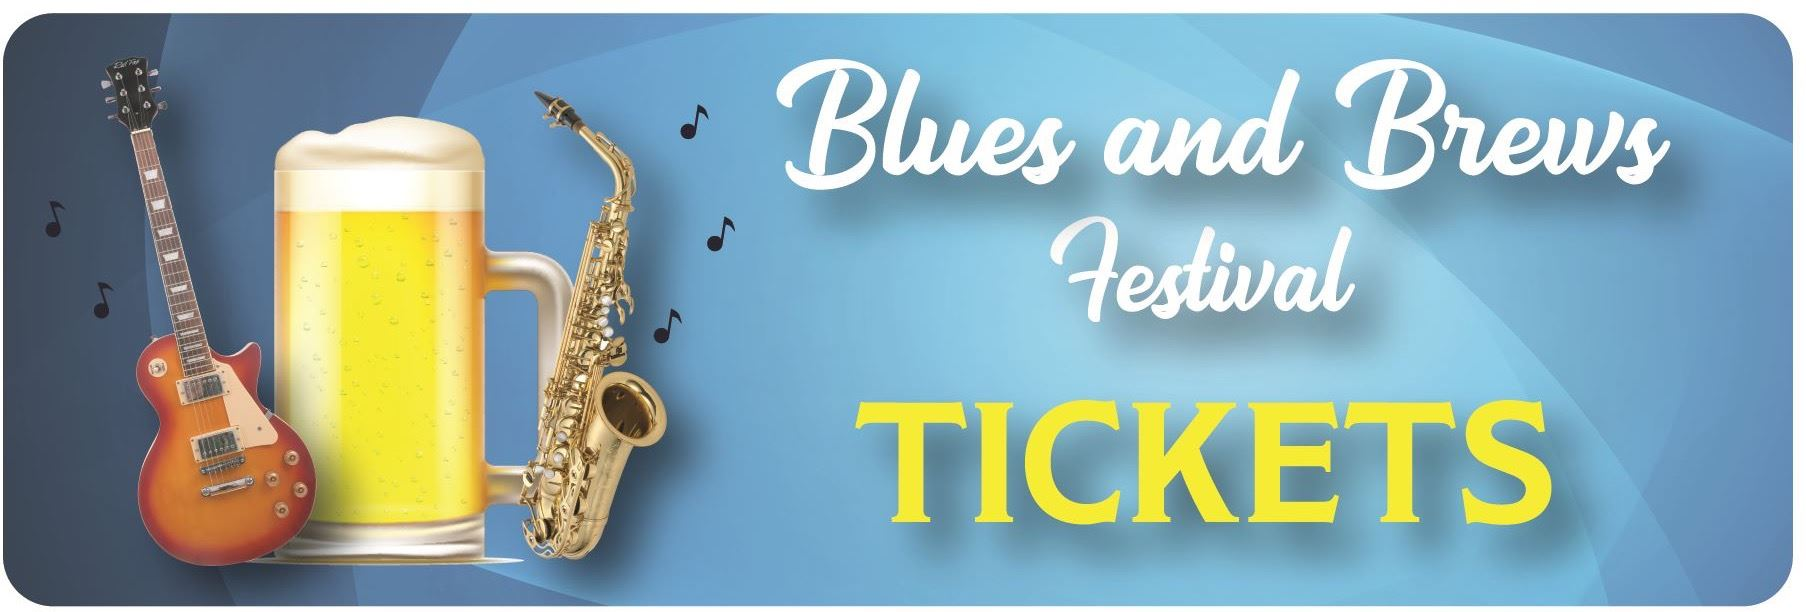 Blues and Brews Ticket Button